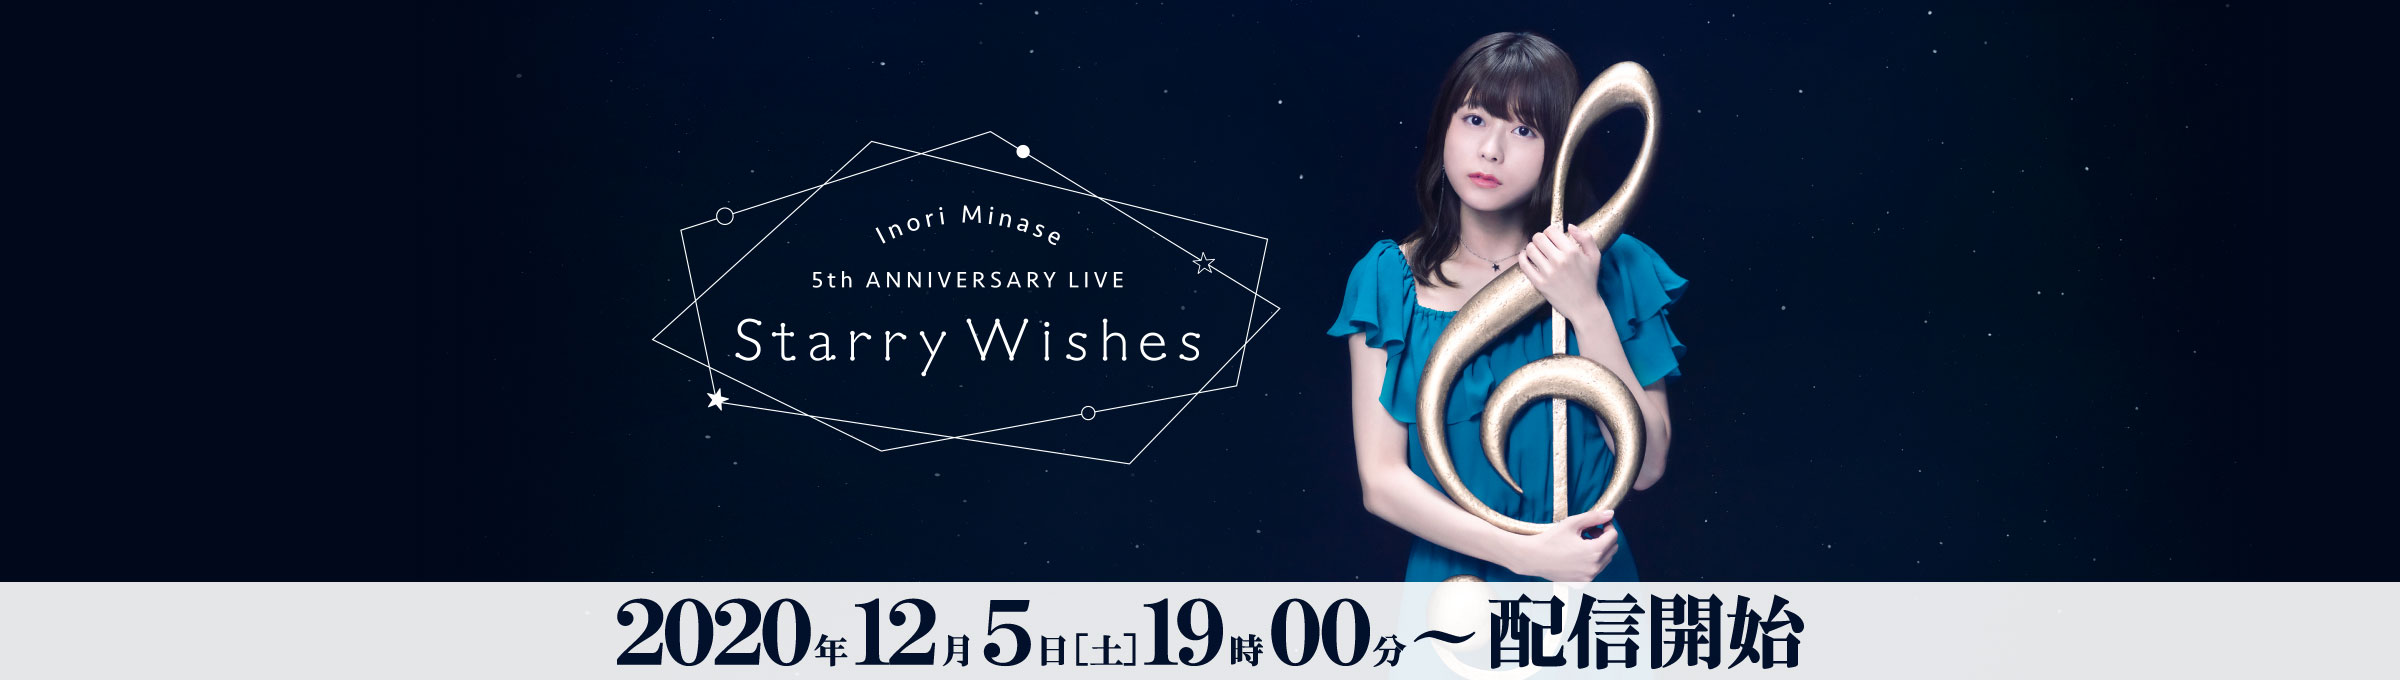 Inori Minase 5th ANNIVERSARY LIVE Starry Wishes